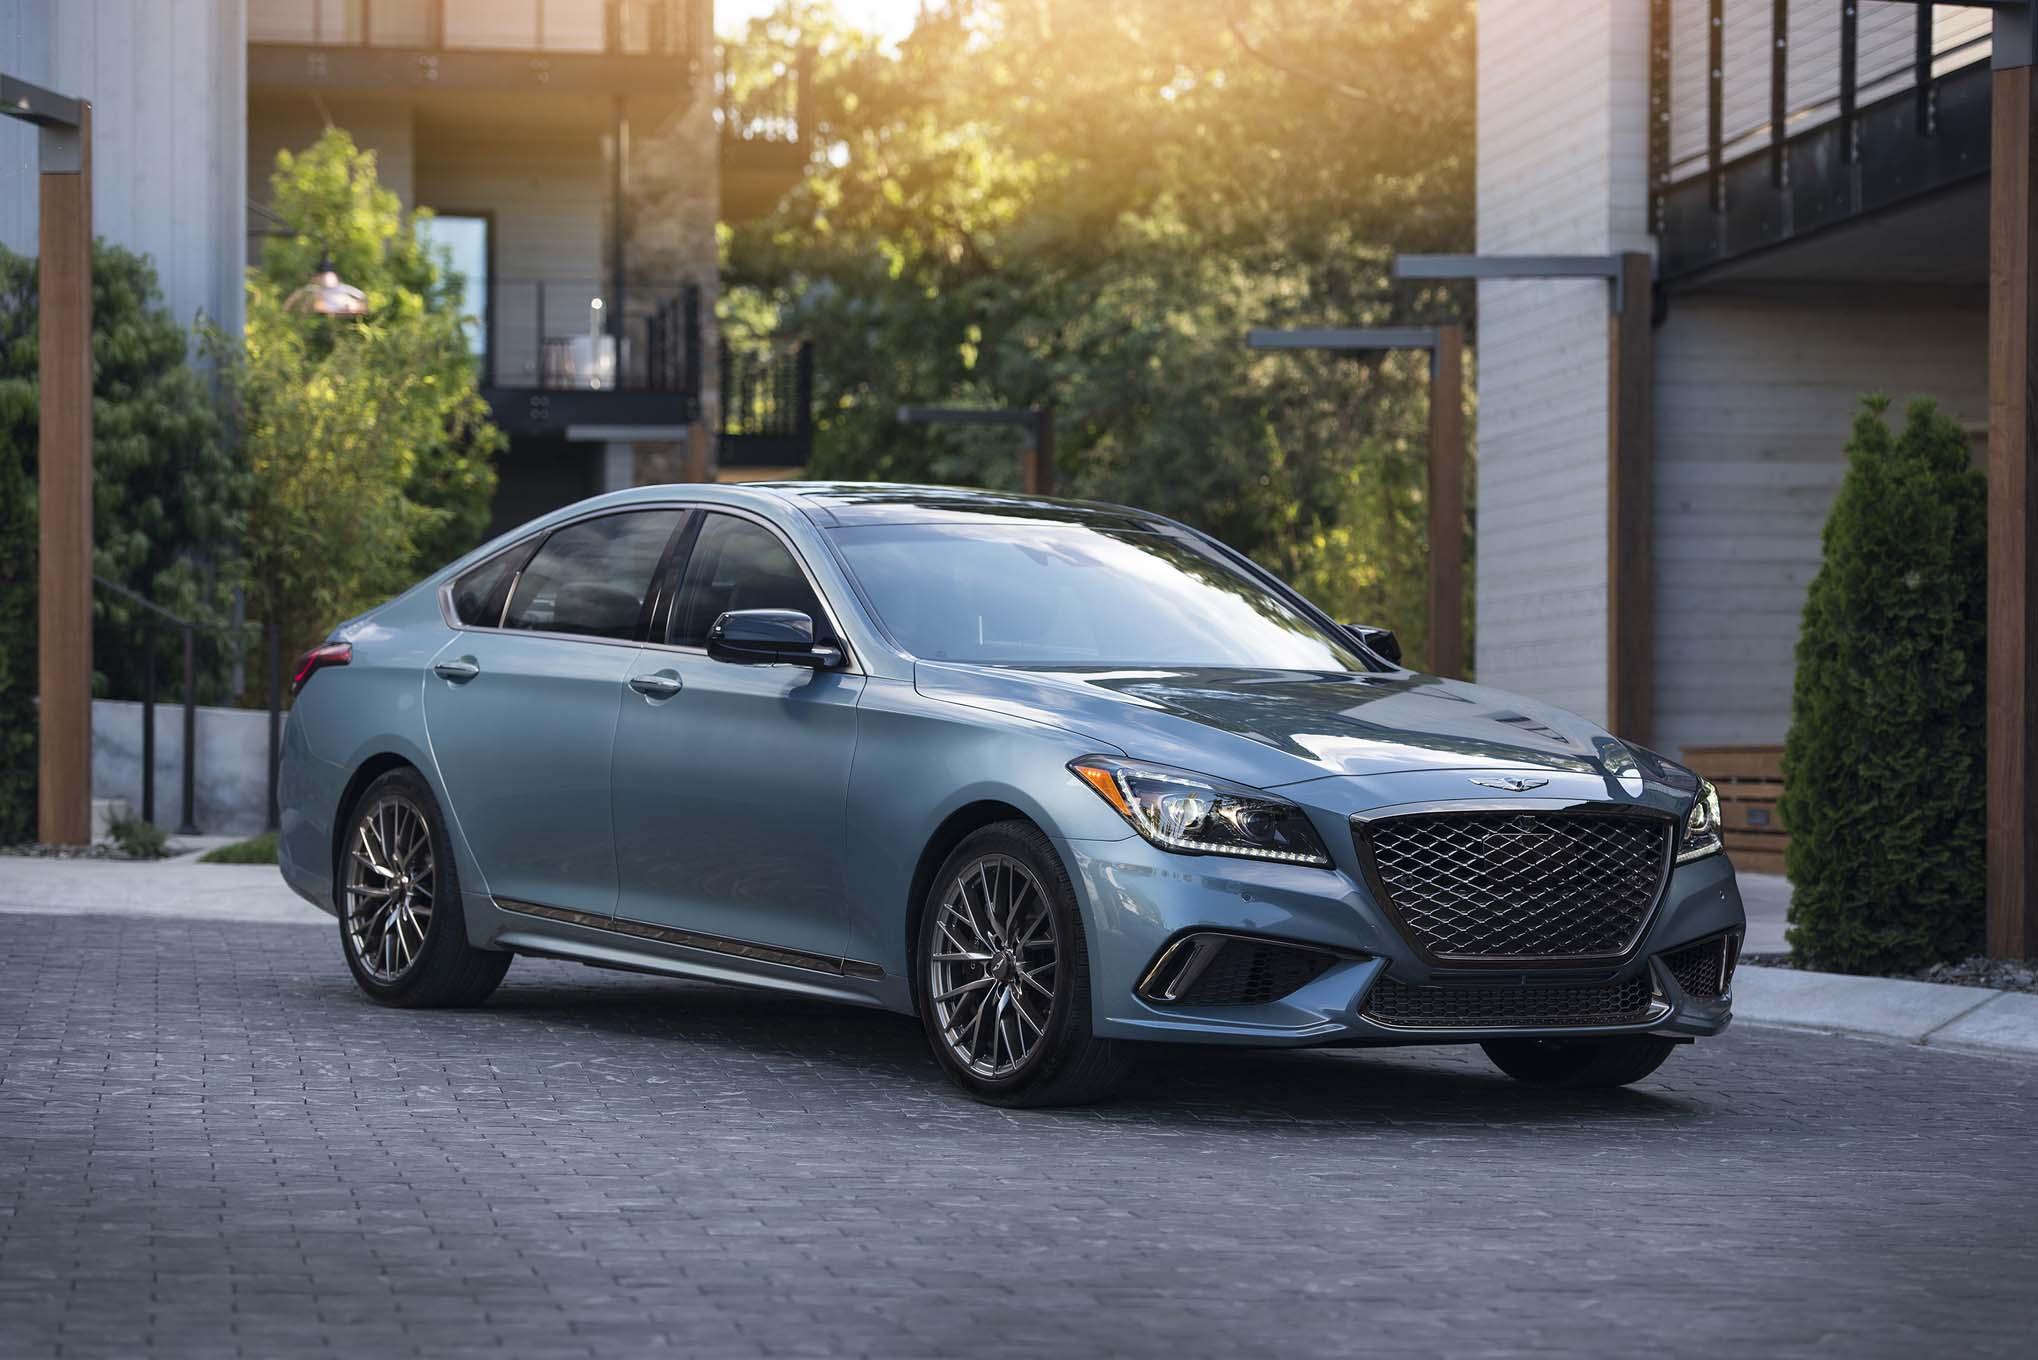 2018 genesis g80 sport first drive review automobile magazine. Black Bedroom Furniture Sets. Home Design Ideas